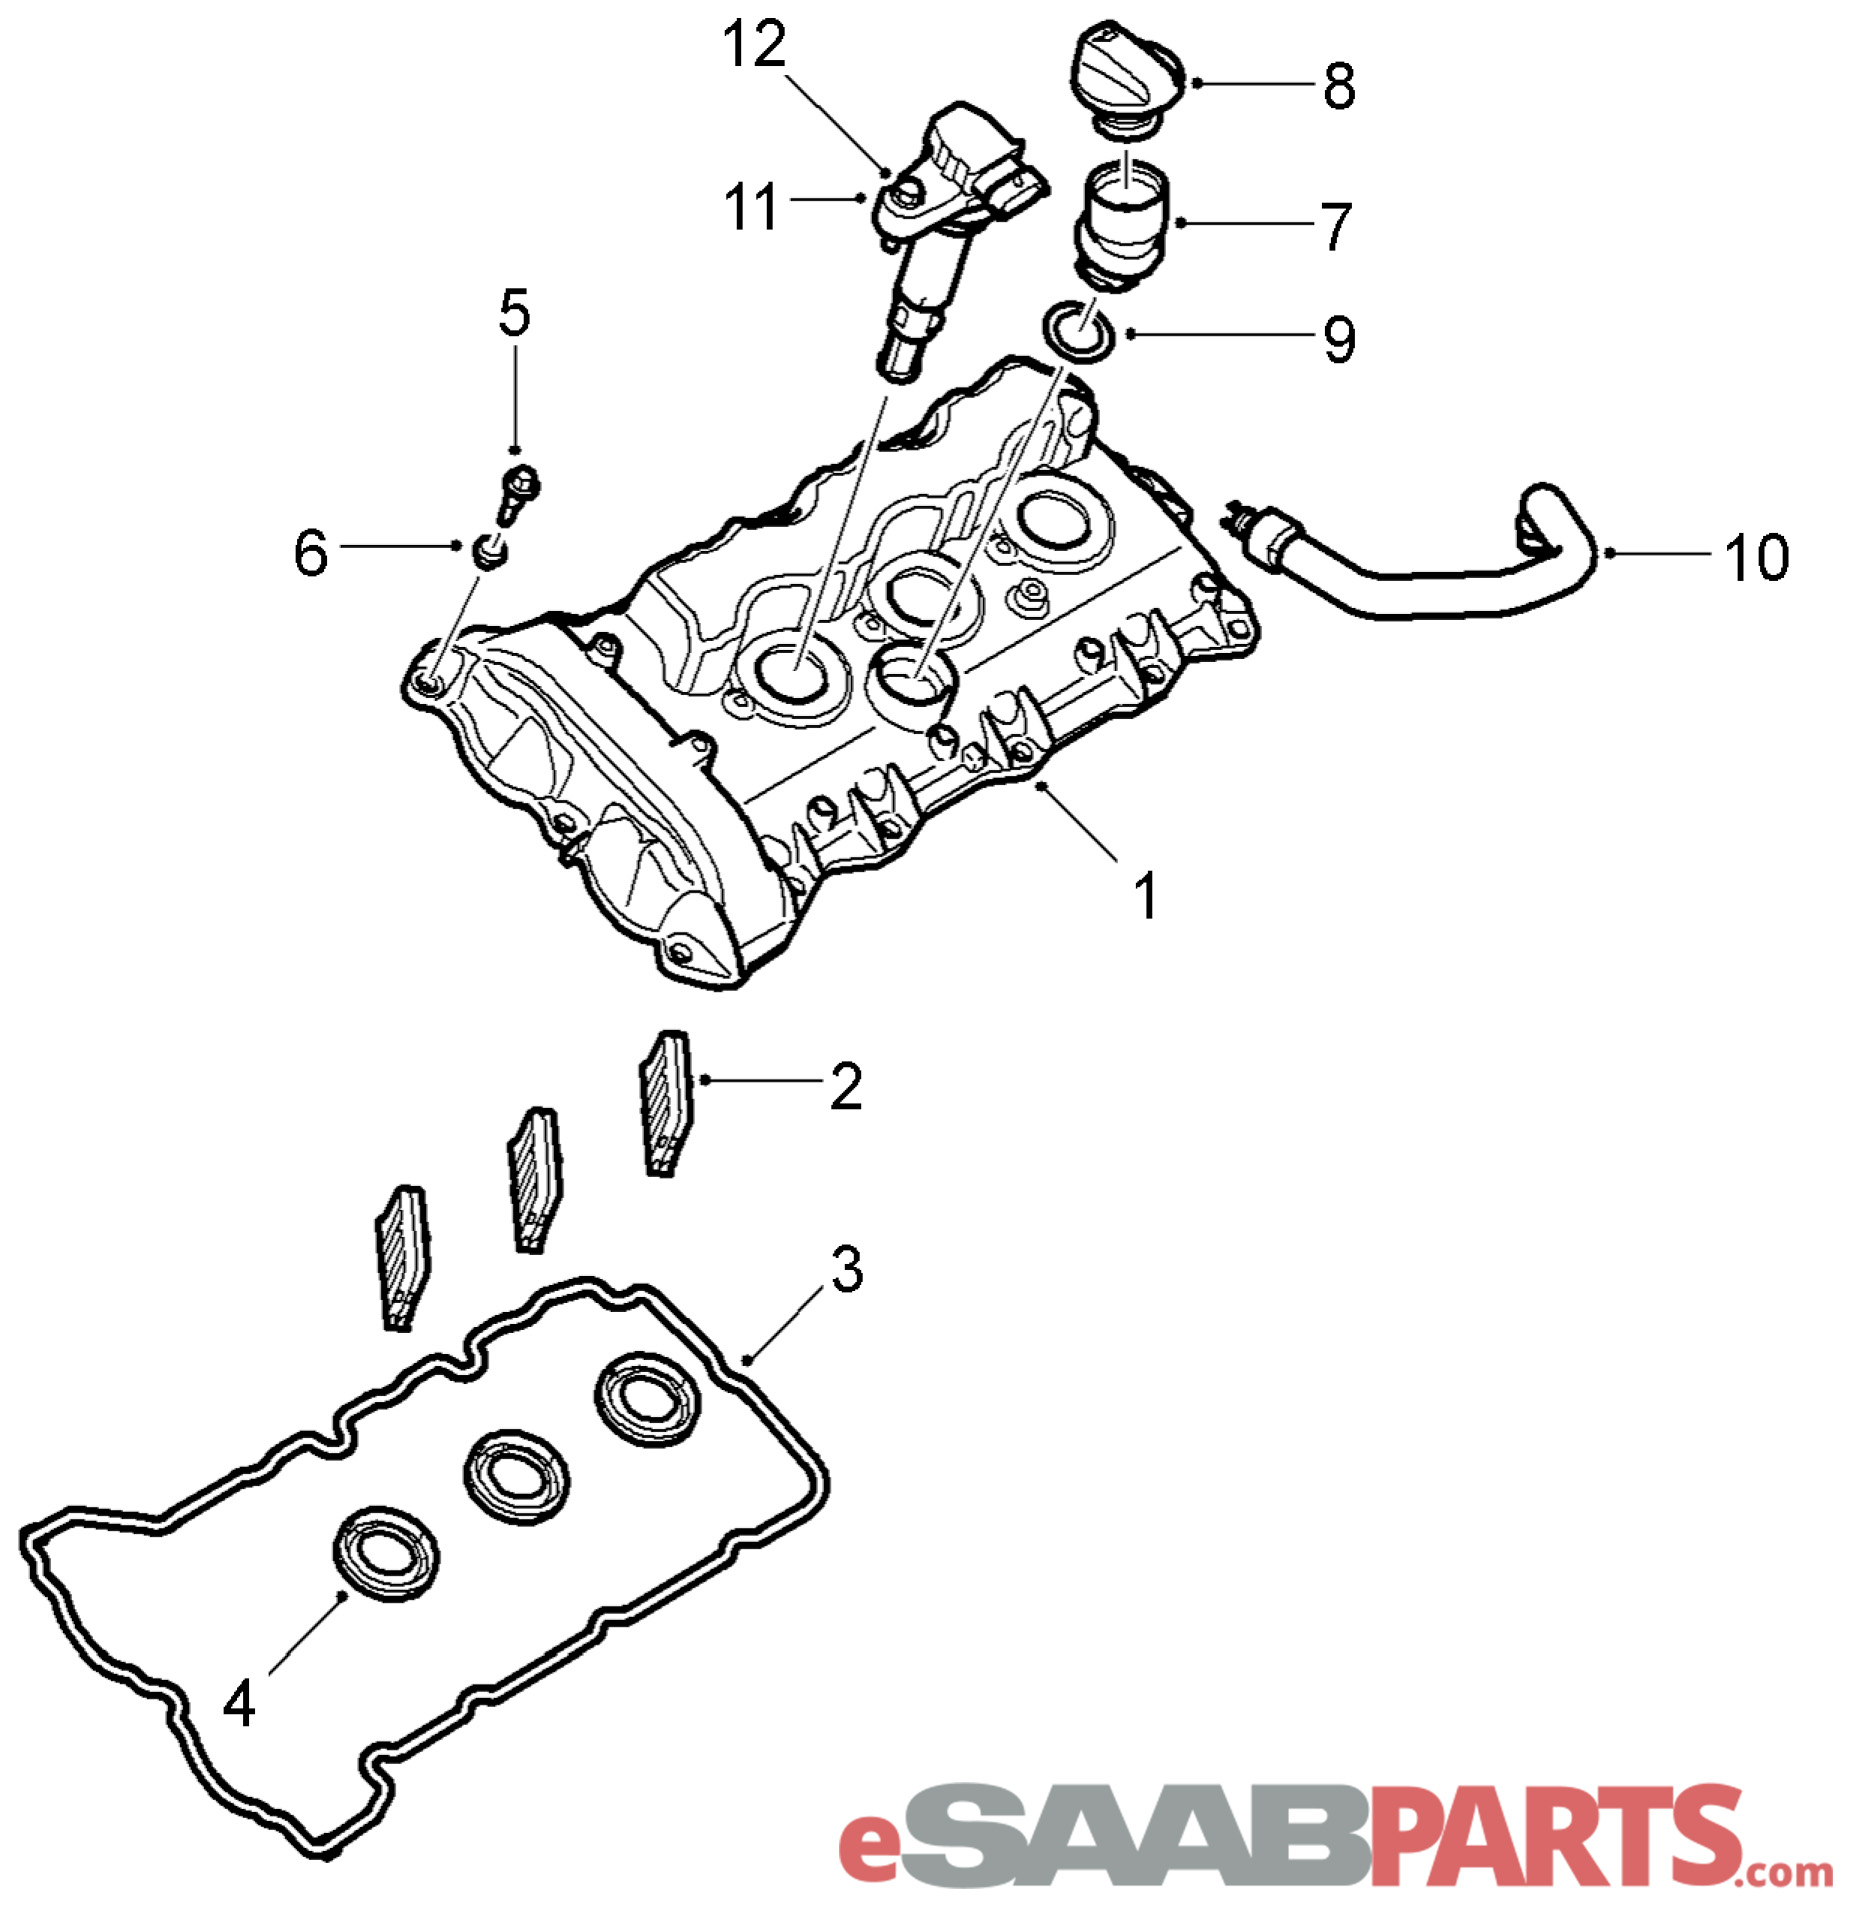 top suggestions 2006 infiniti g35 part diagram :